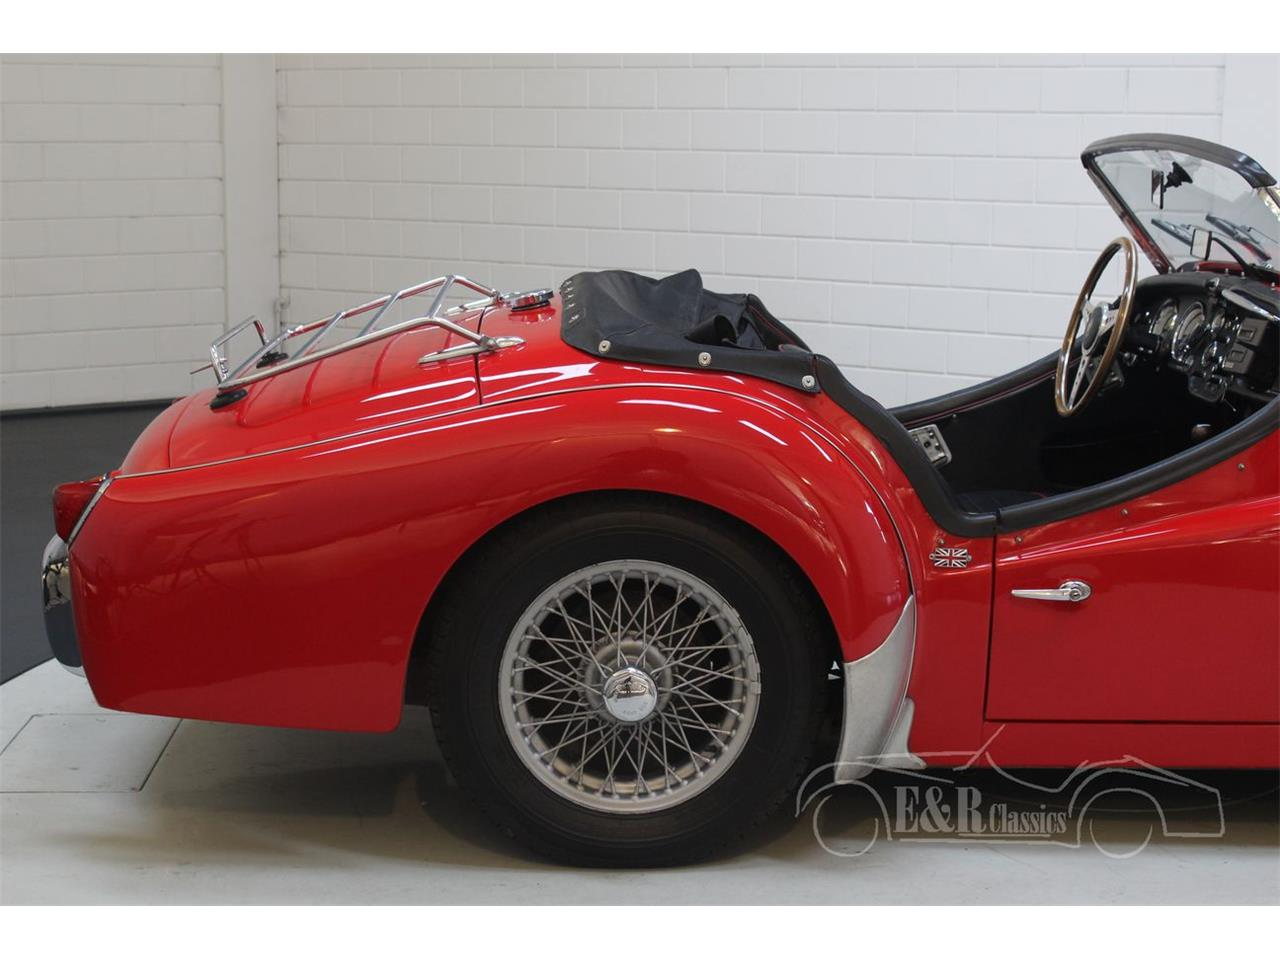 Large Picture of Classic '60 TR3A located in Waalwijk Noord-Brabant - $41,800.00 Offered by E & R Classics - PLXB